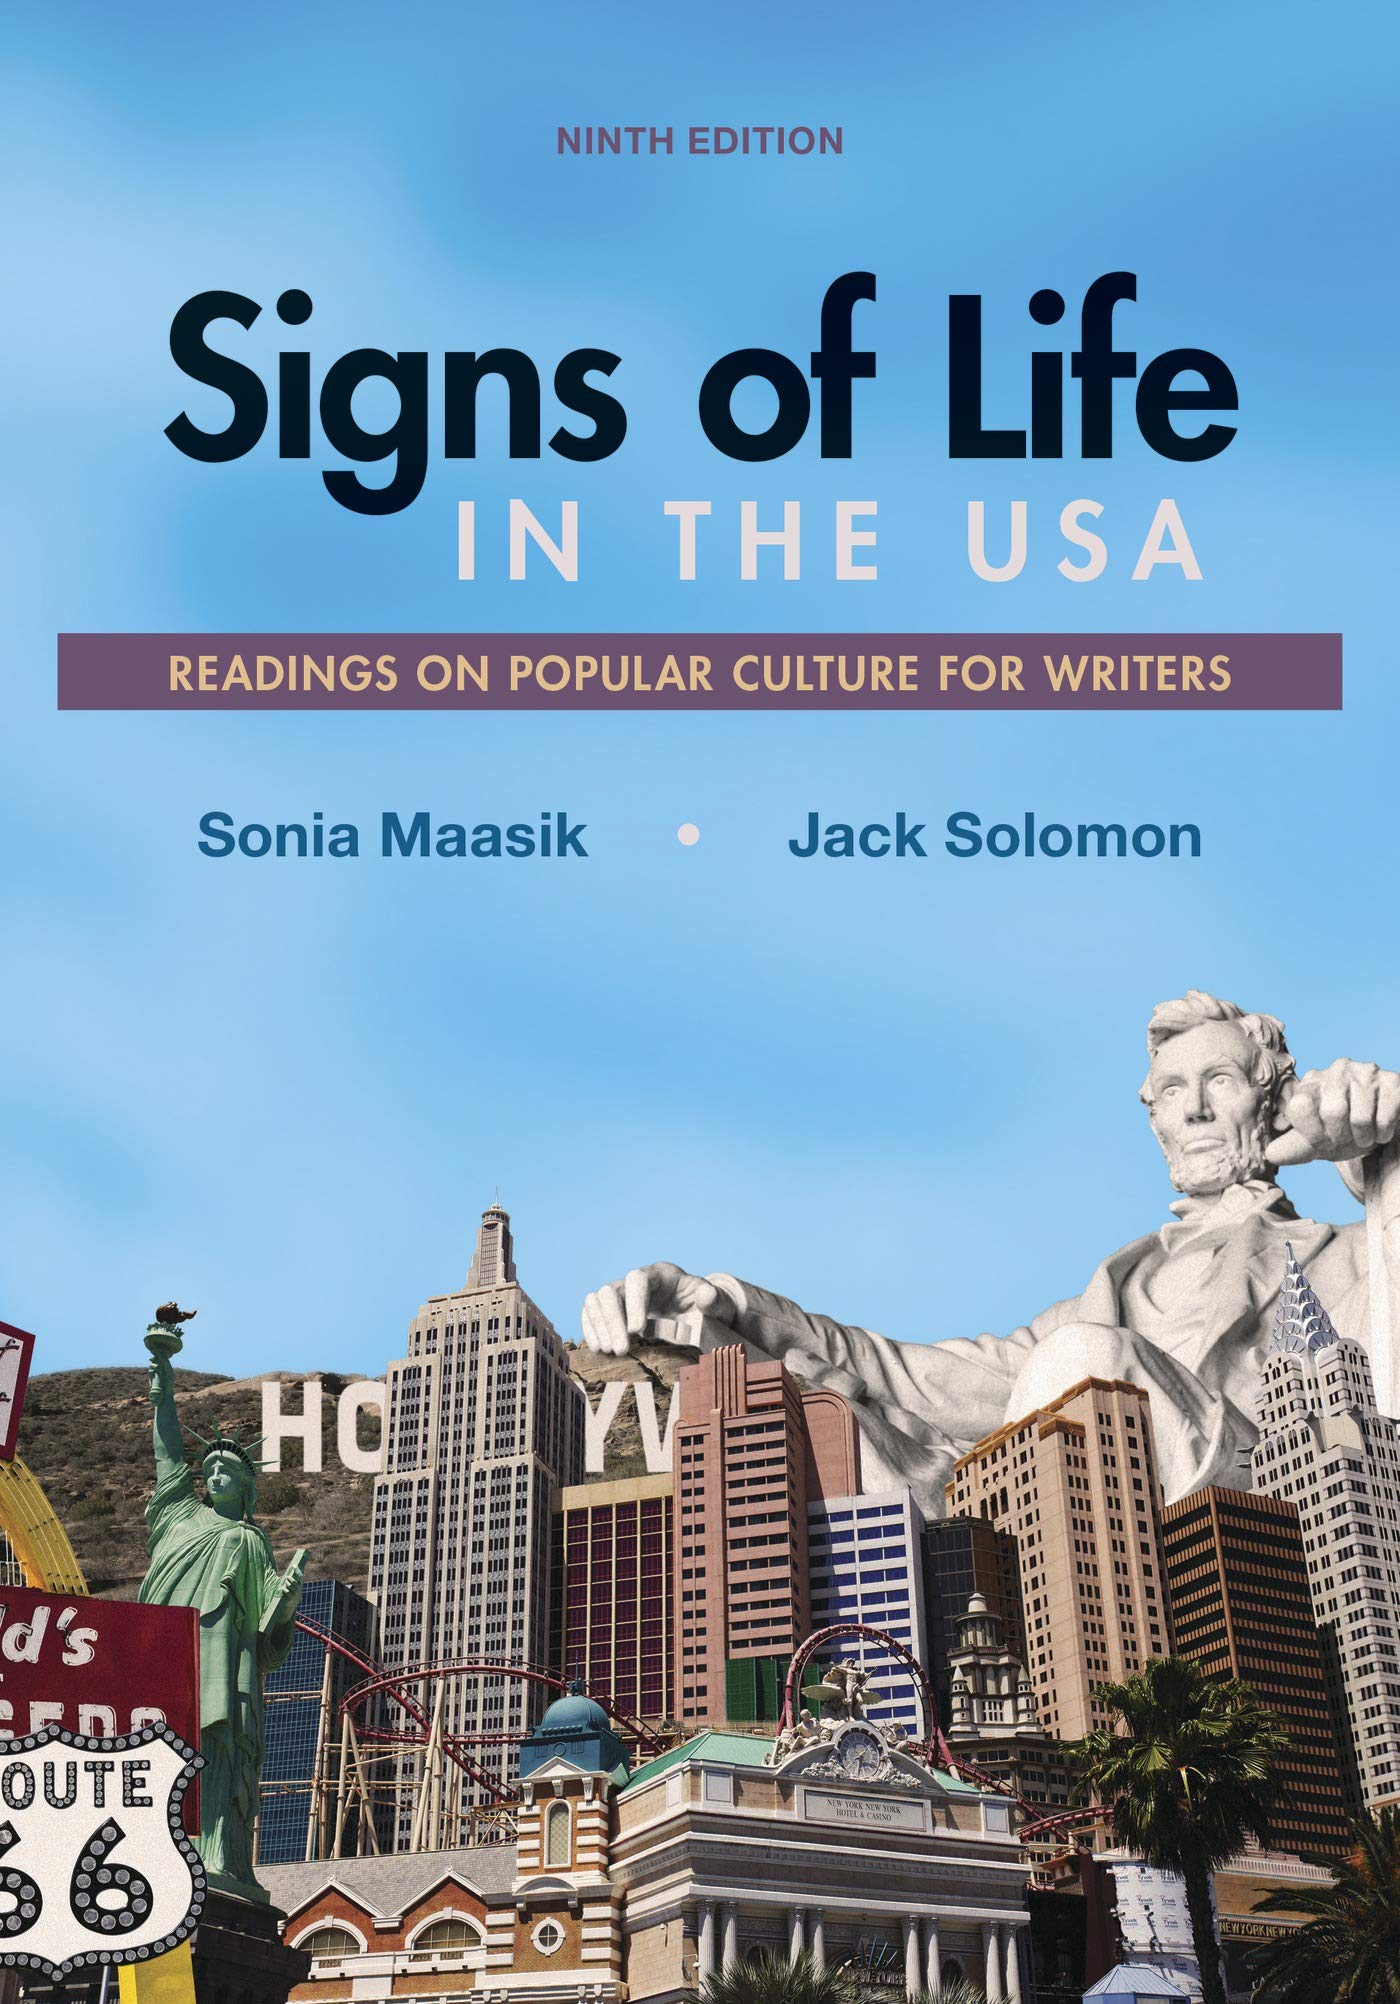 Signs of Life in the USA: Readings on Popular Culture for Writers by Bedford/St. Martin's